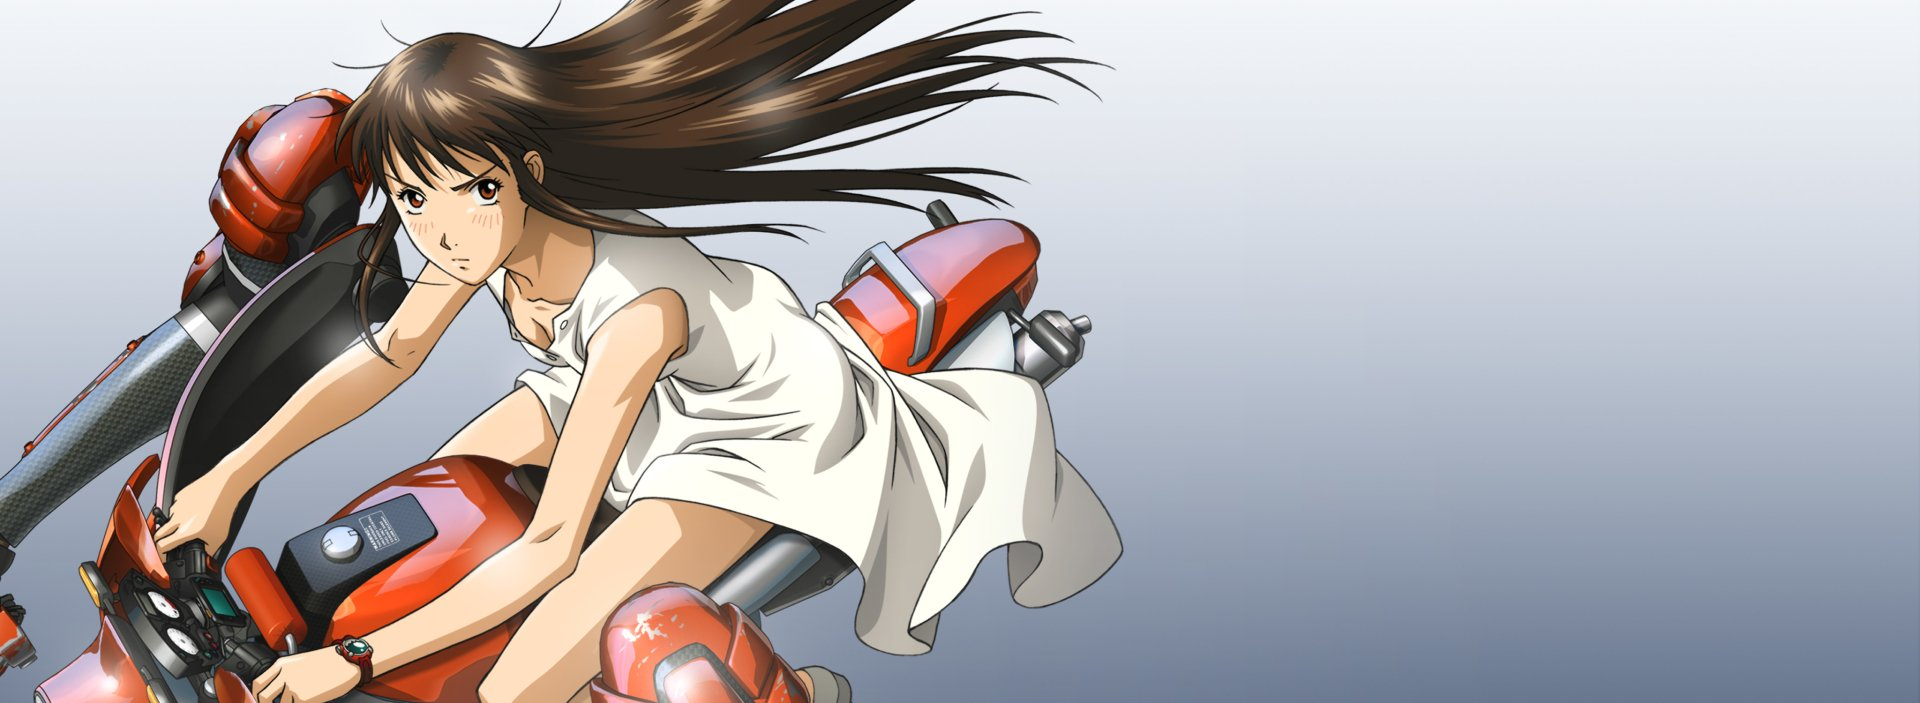 Wallpapers ID:839458